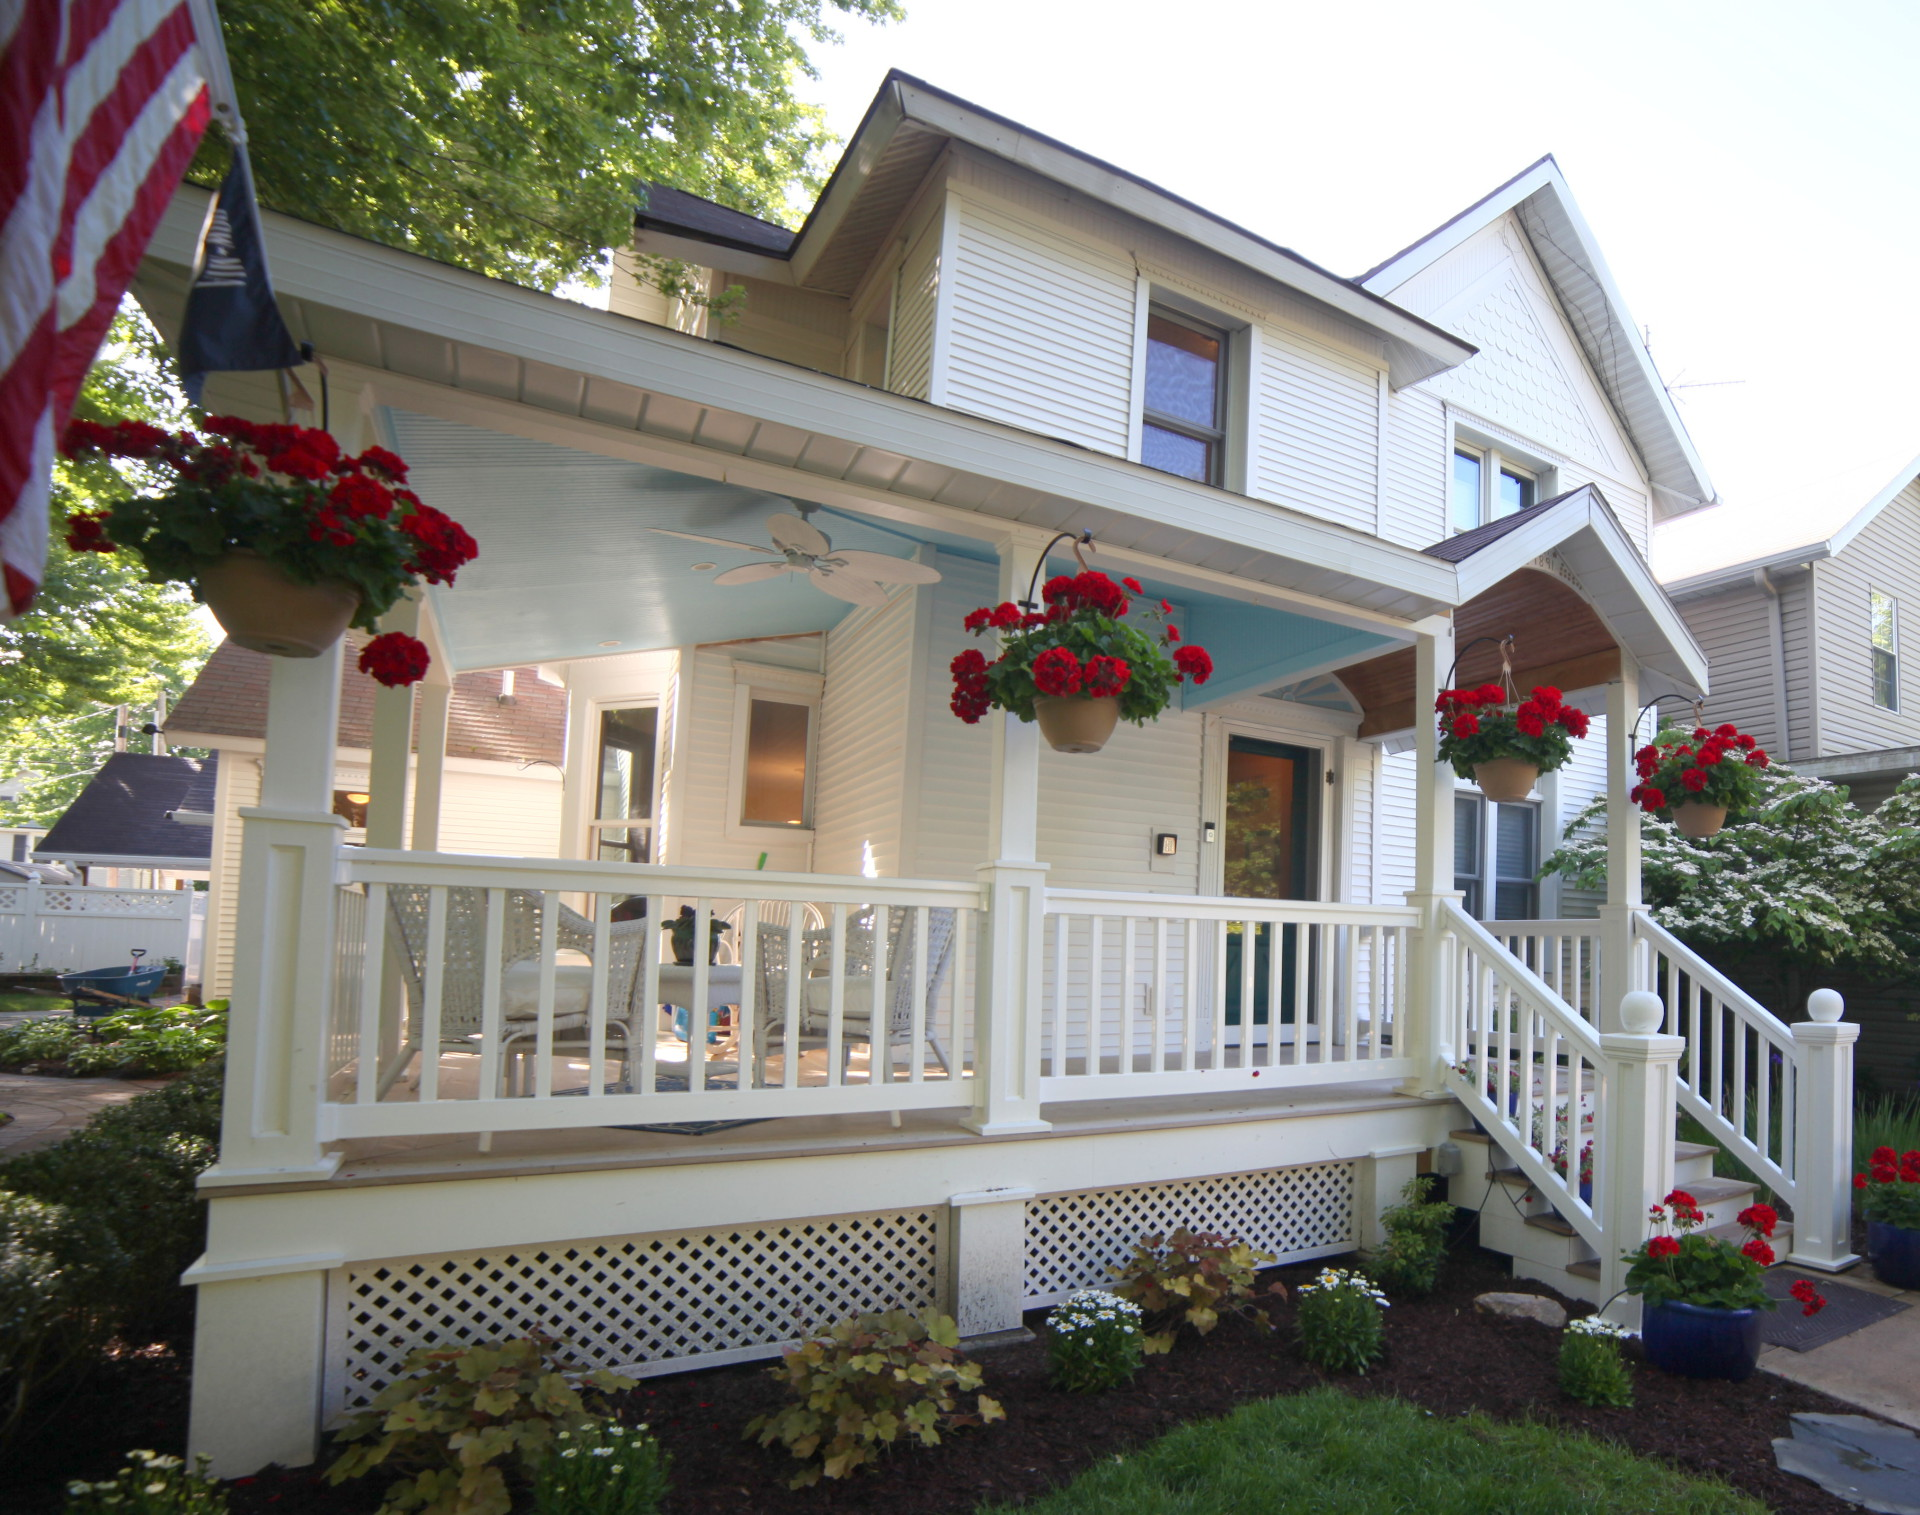 The Duncan House Bed and Breakfast